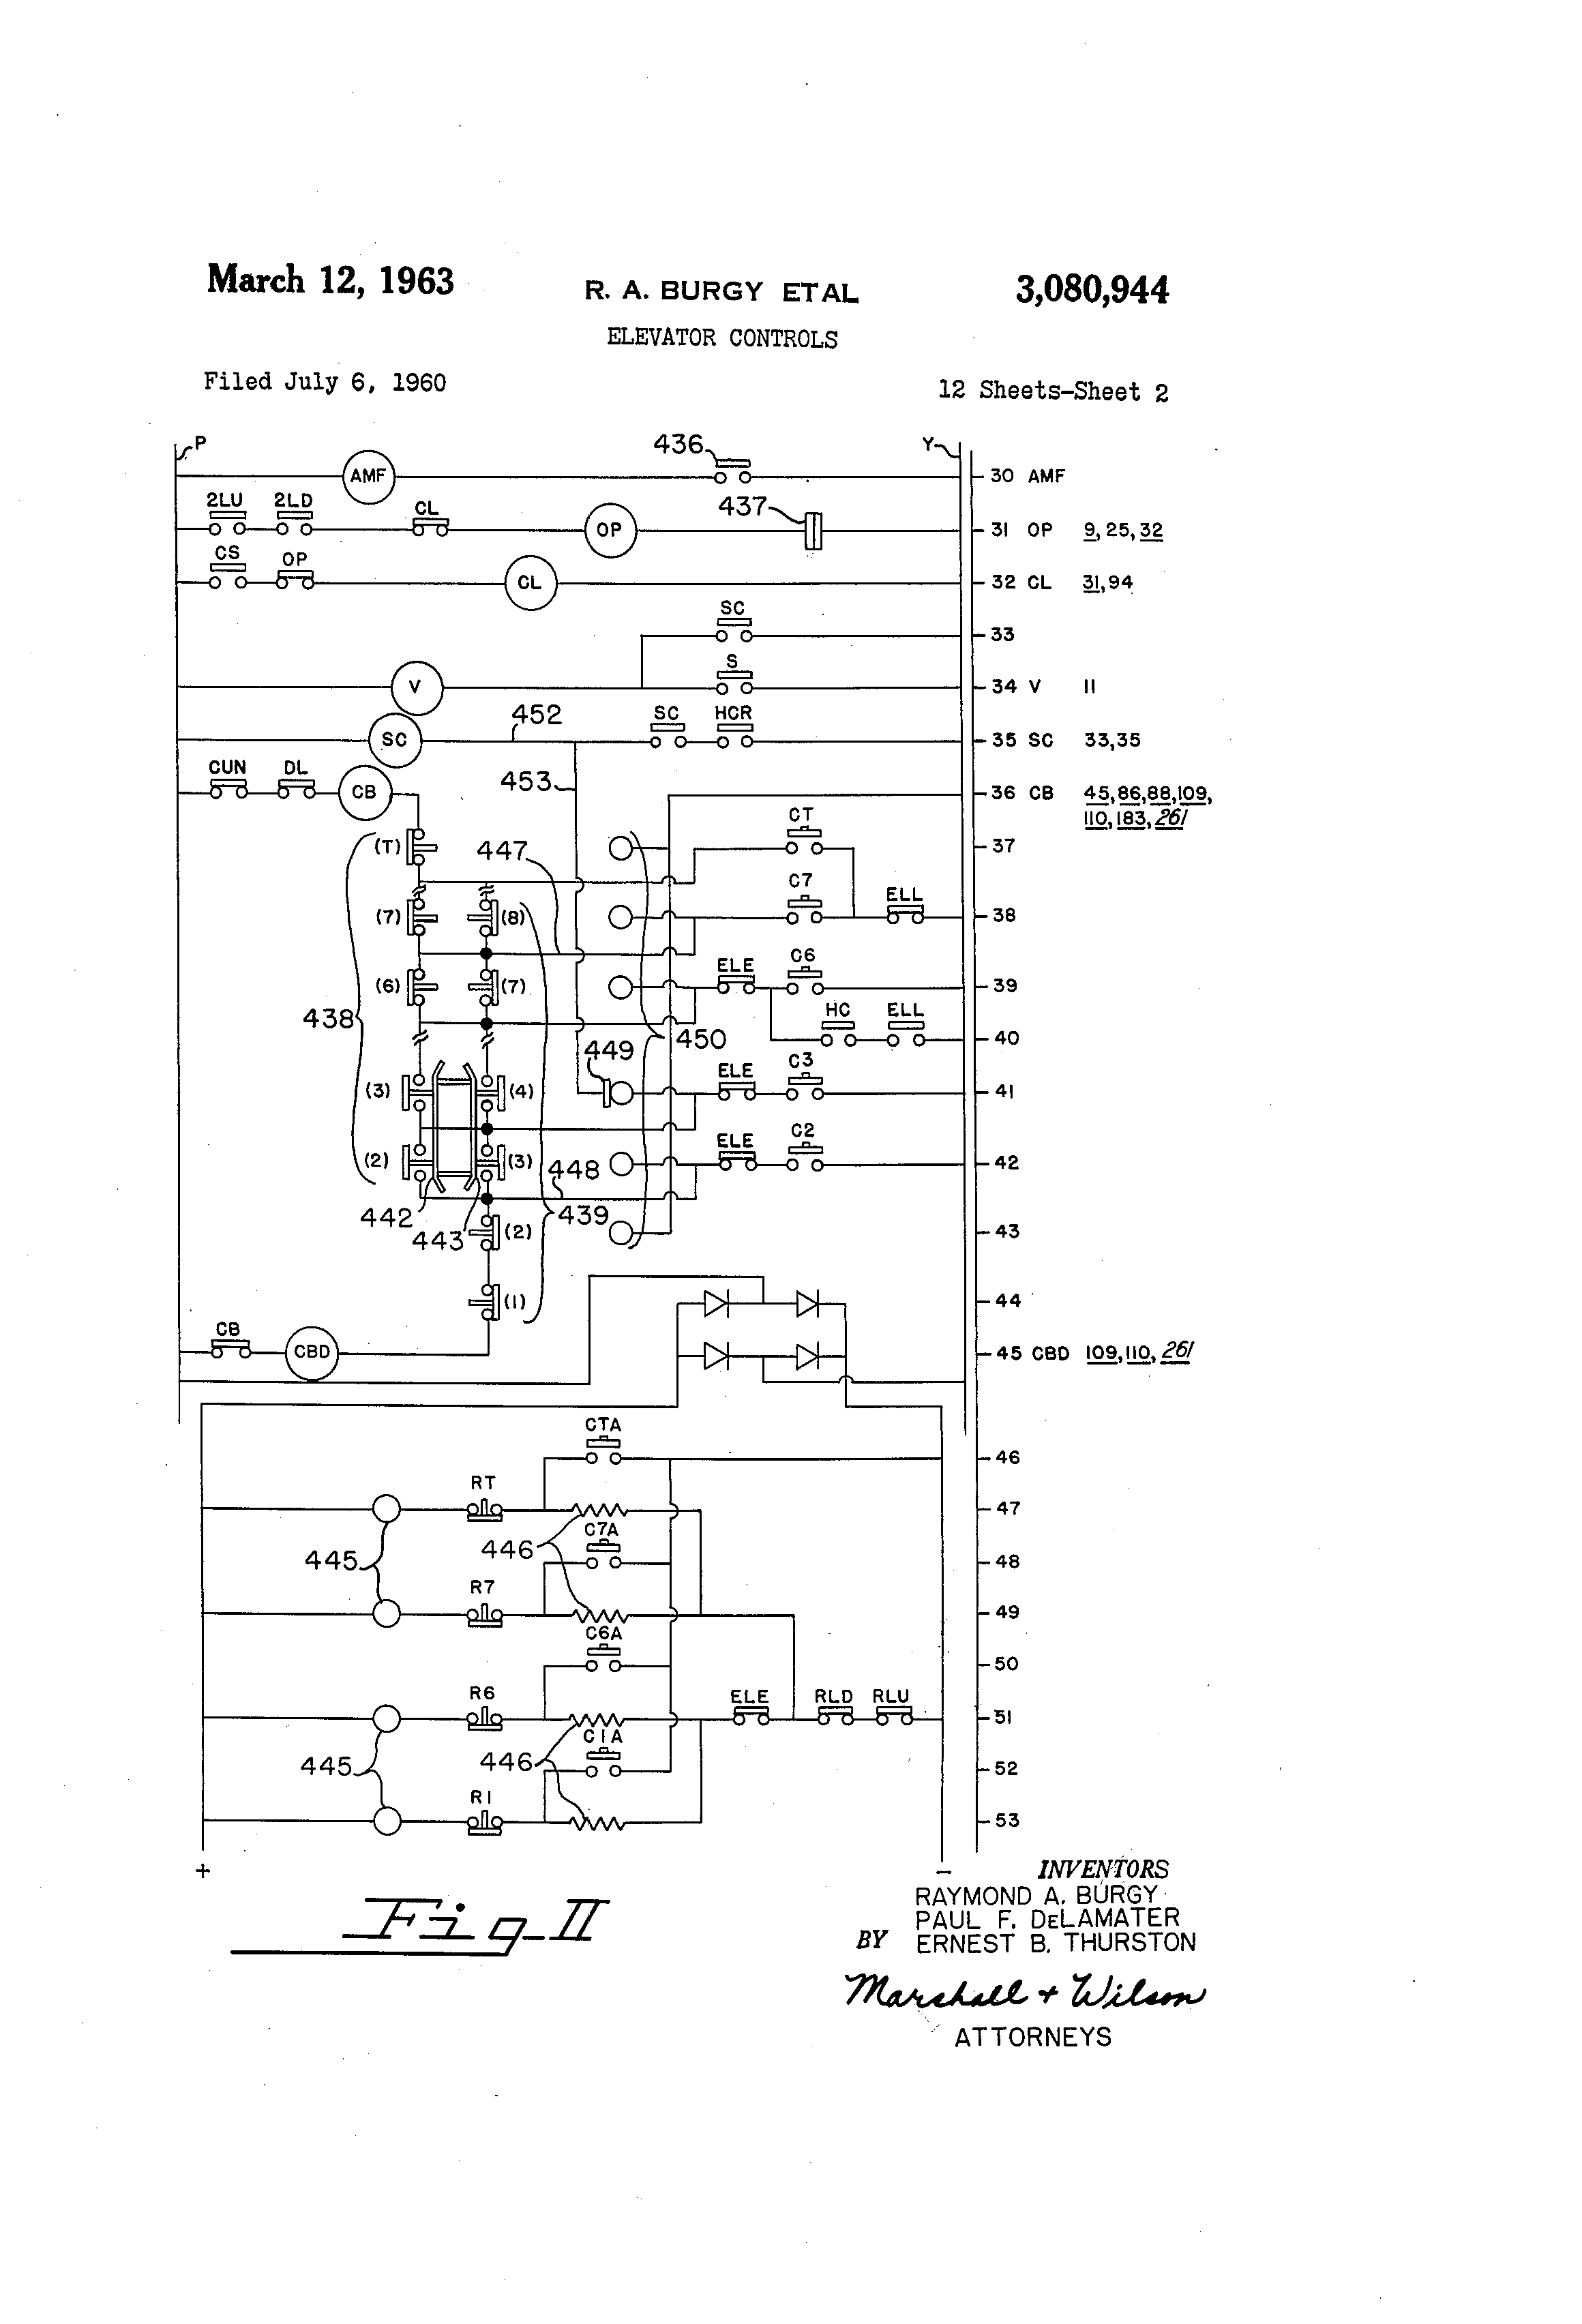 dover elevator wiring diagram wiring source u2022 rh thegun co Elevator Controls Diagrams Otis Elevator Schematic Diagram